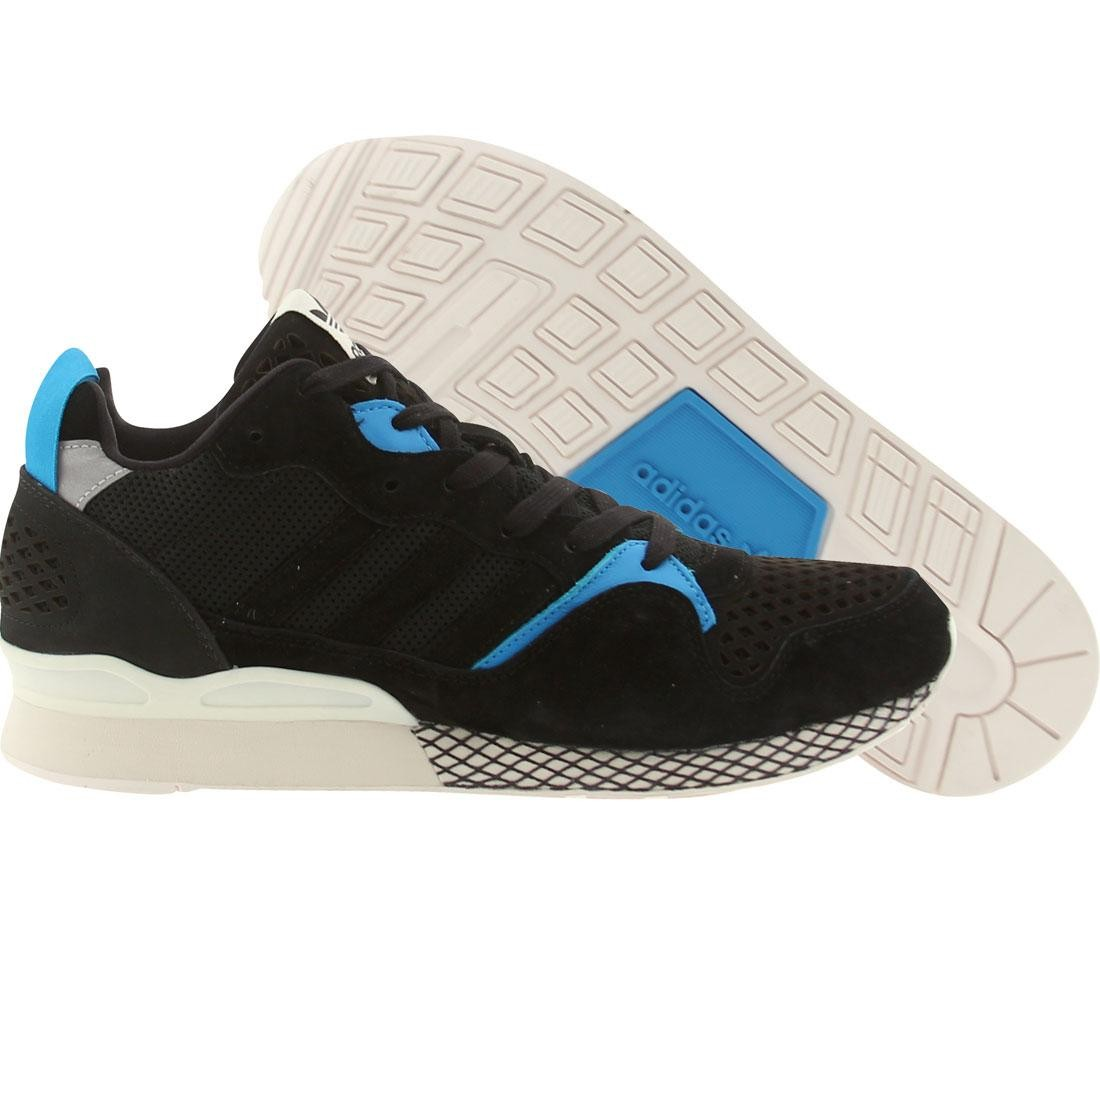 sneakers for cheap 4bfed 6ad95 add67649 thum1   44455.jpg